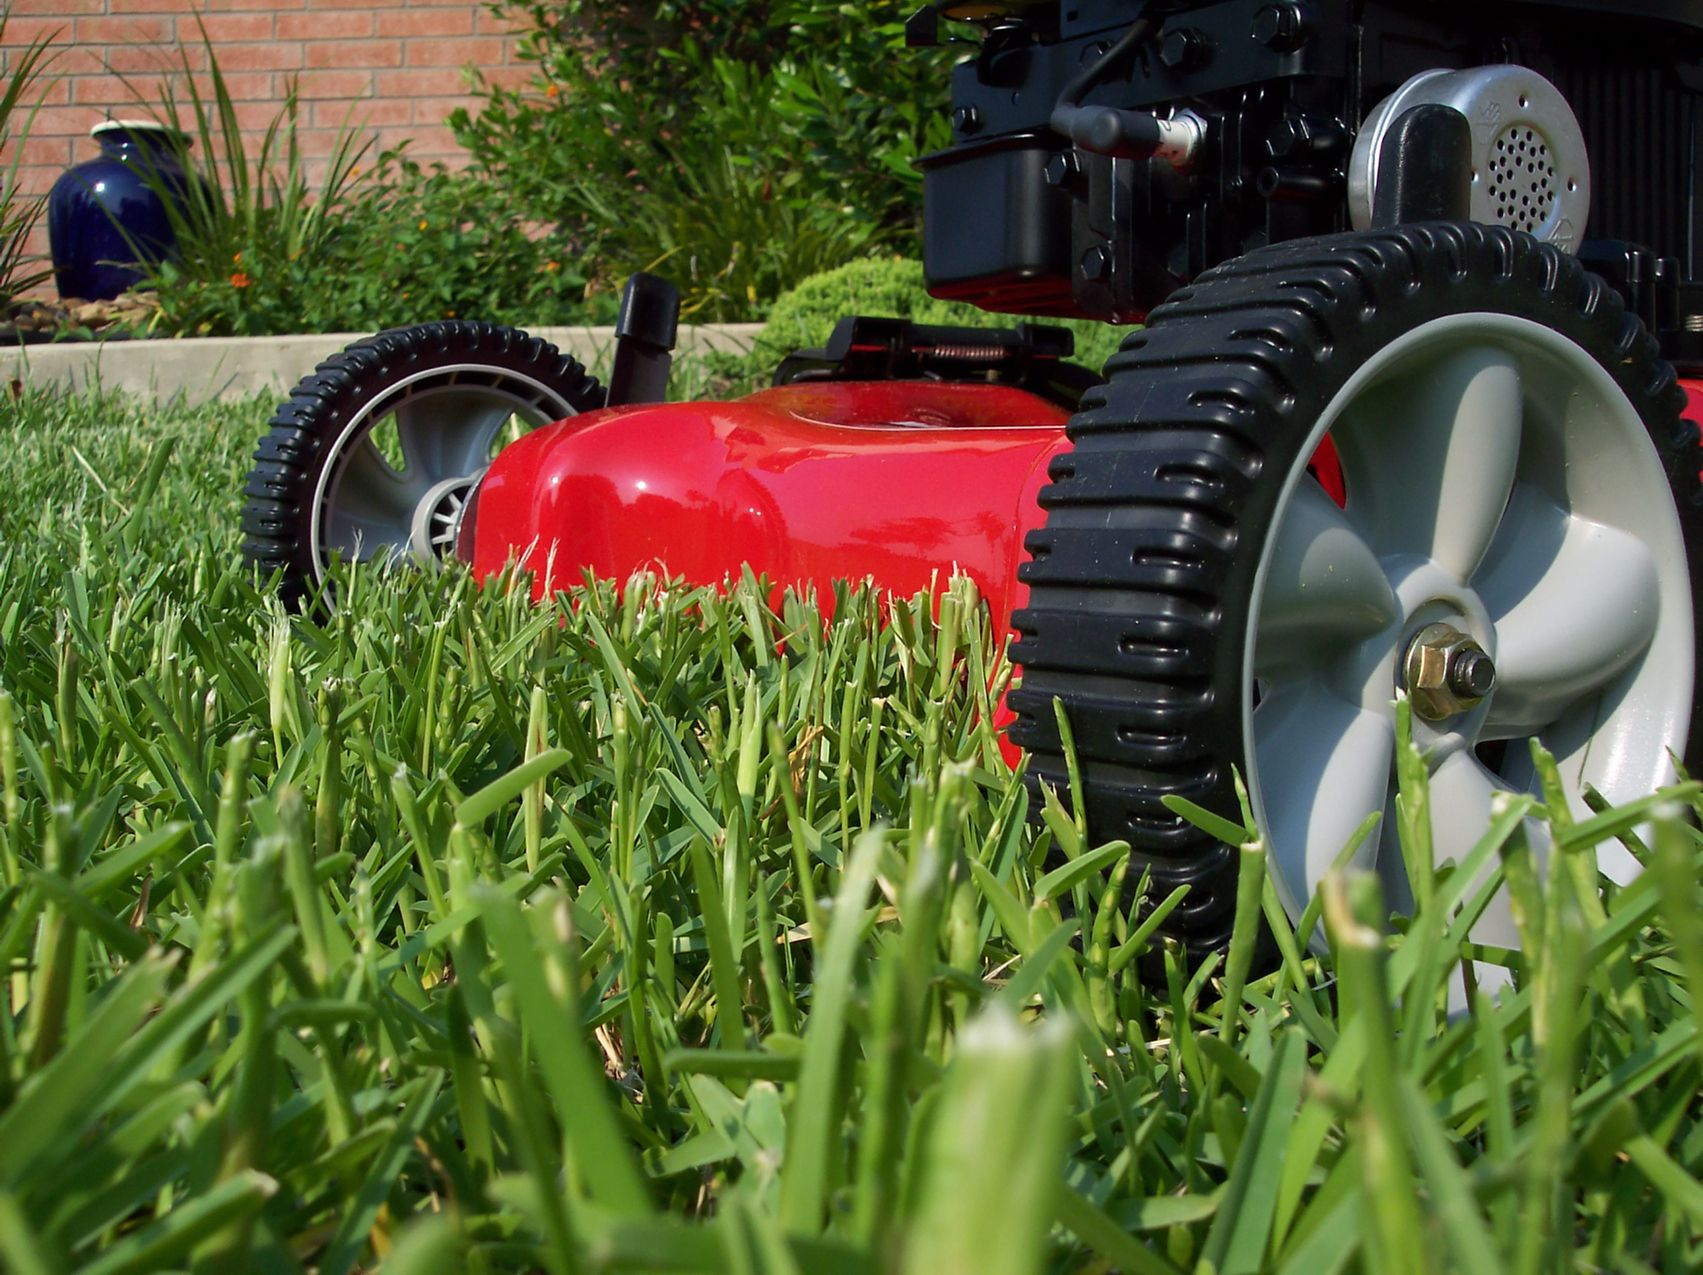 You haven't mowed the lawn yet? Don't panic, but you should read this...